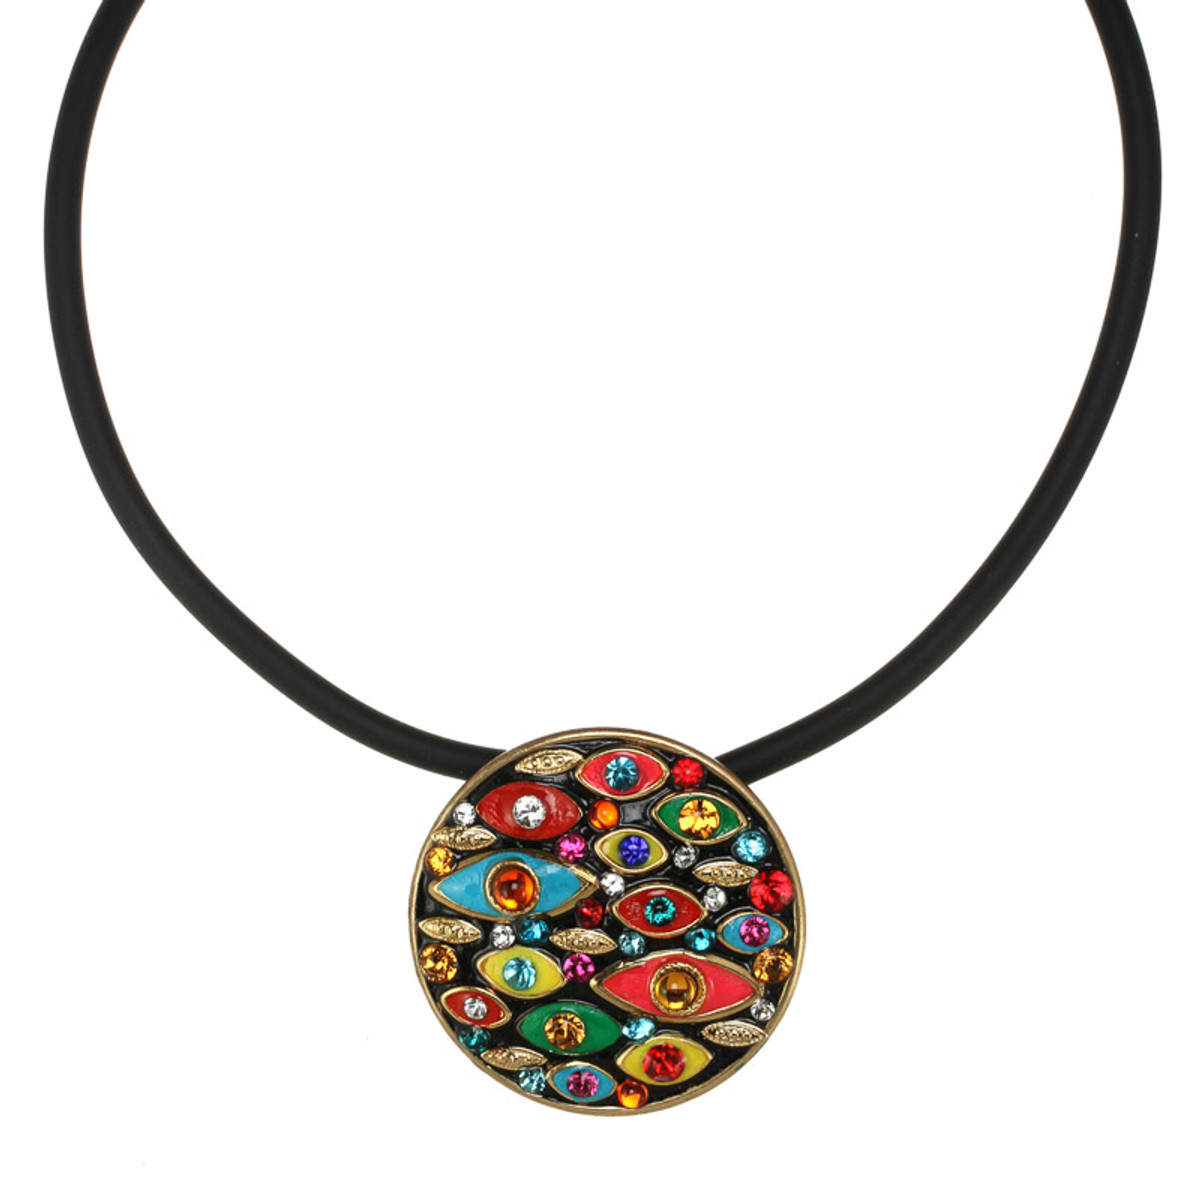 Large Round Multi-eye necklace from Michal Golan Jewelry